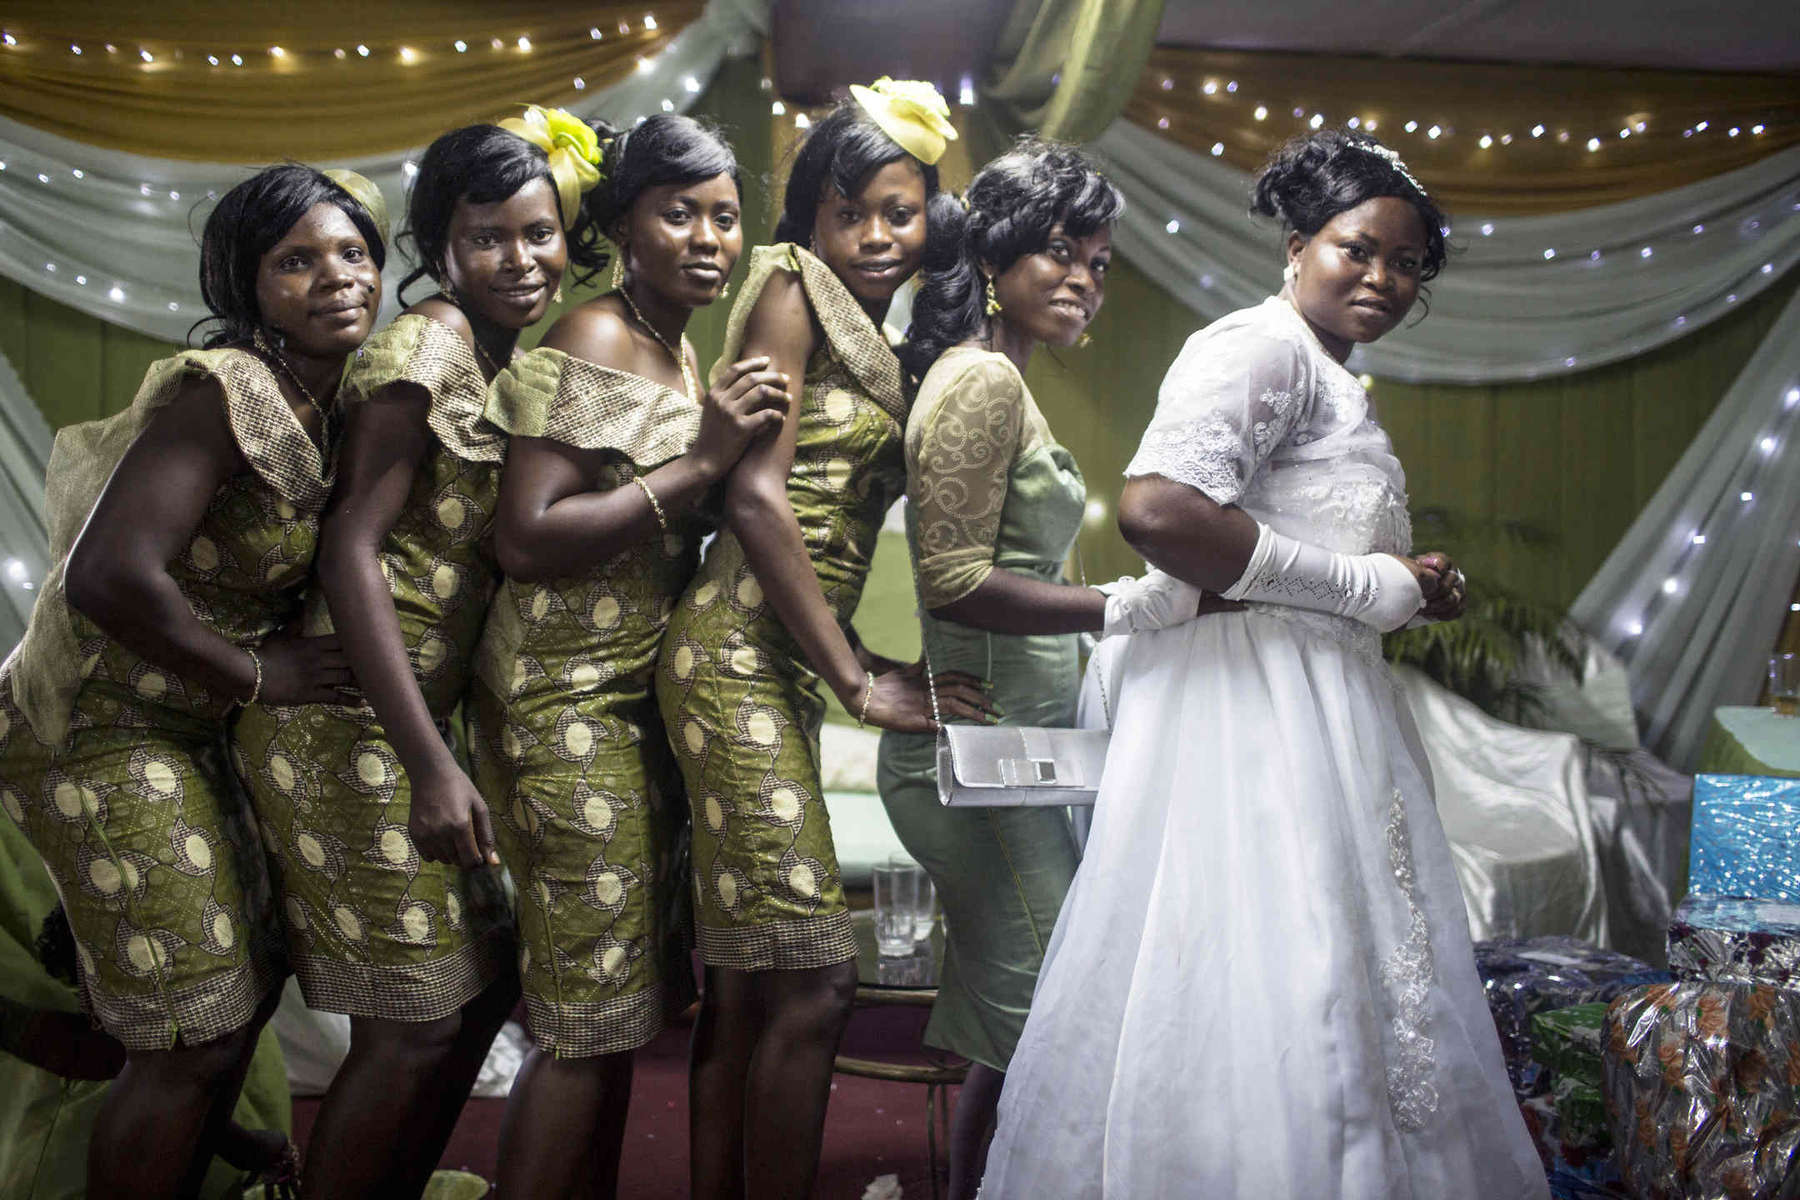 Bride Temitope Caulker poses with her bridesmaids, who in typical Nigerian fashion, wear outfits that match the decor of the wedding hall.